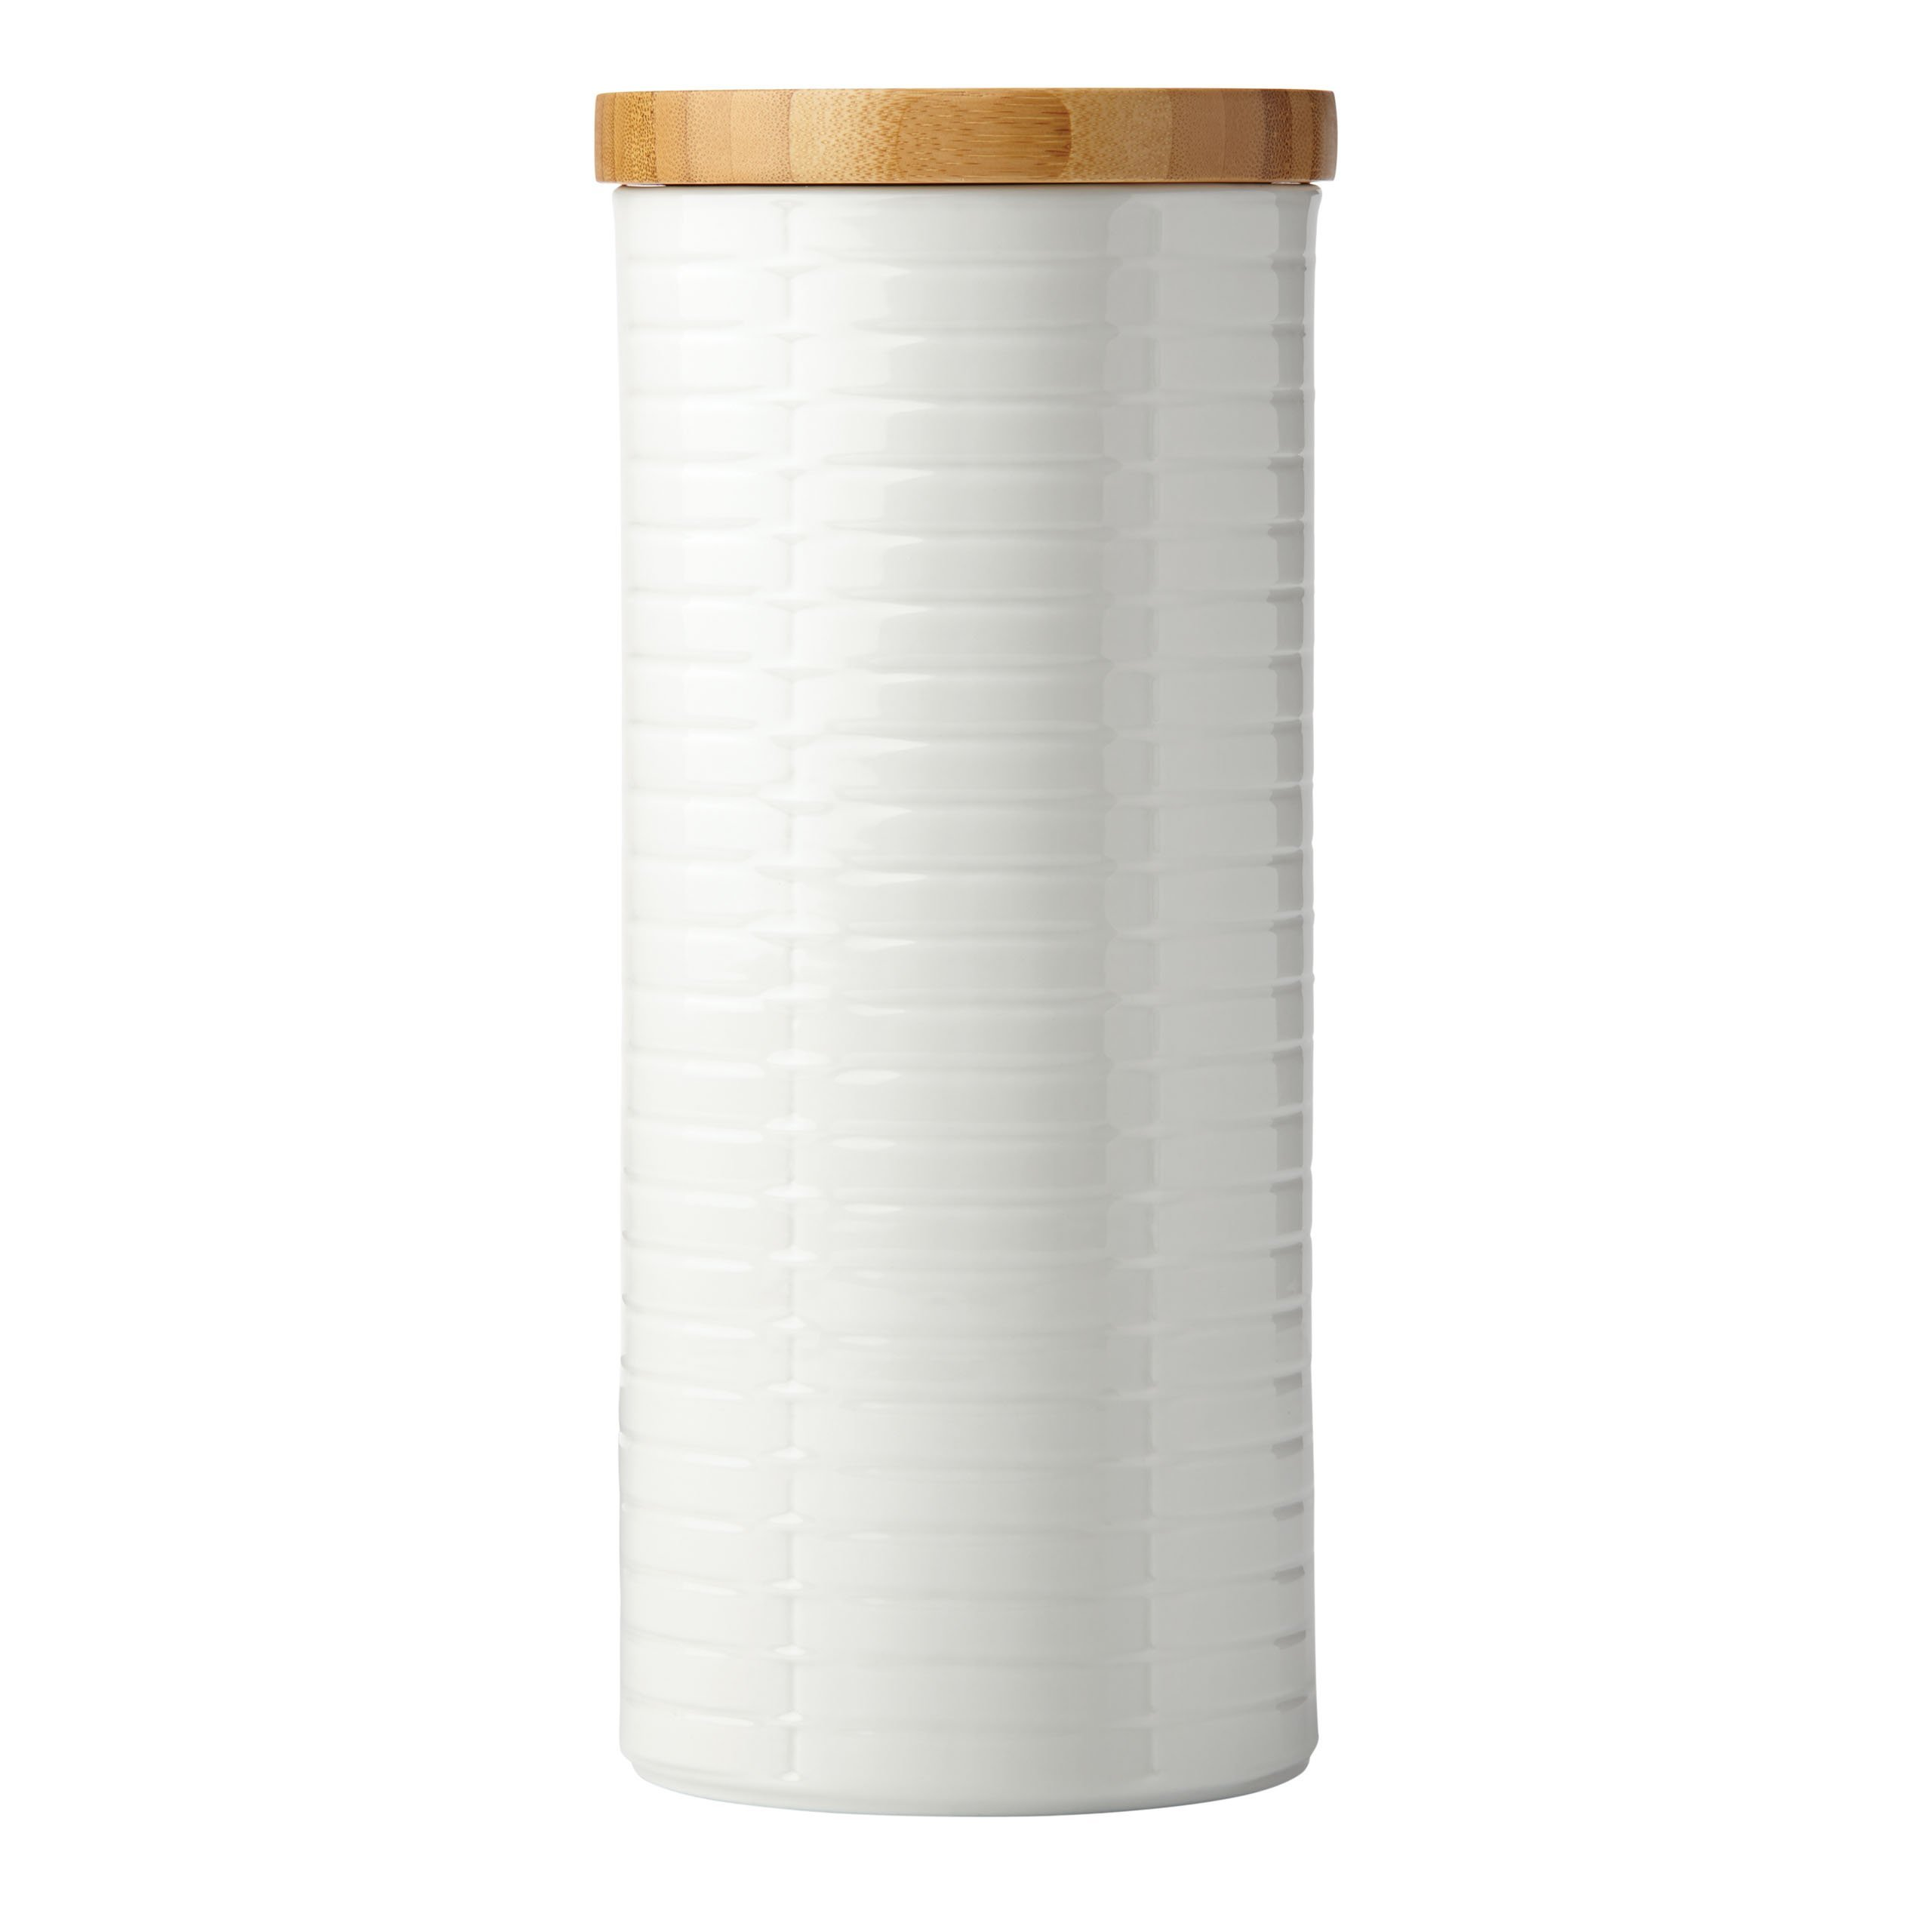 Lenox Entertain 365 Sculpture Tall Canister with Lid, White